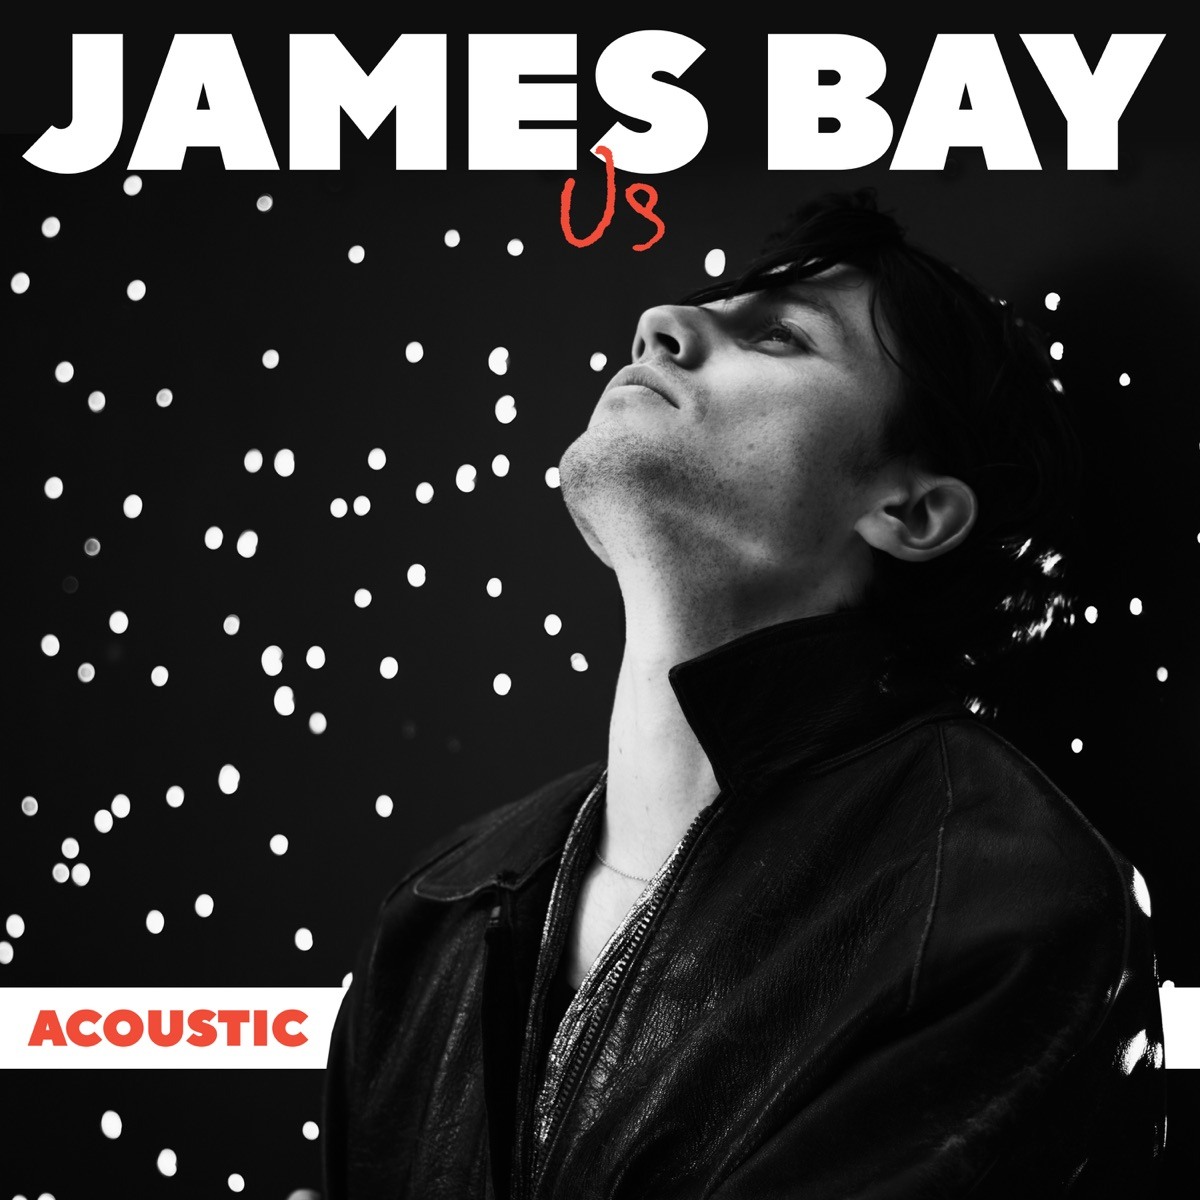 Us Acoustic - Single James Bay CD cover